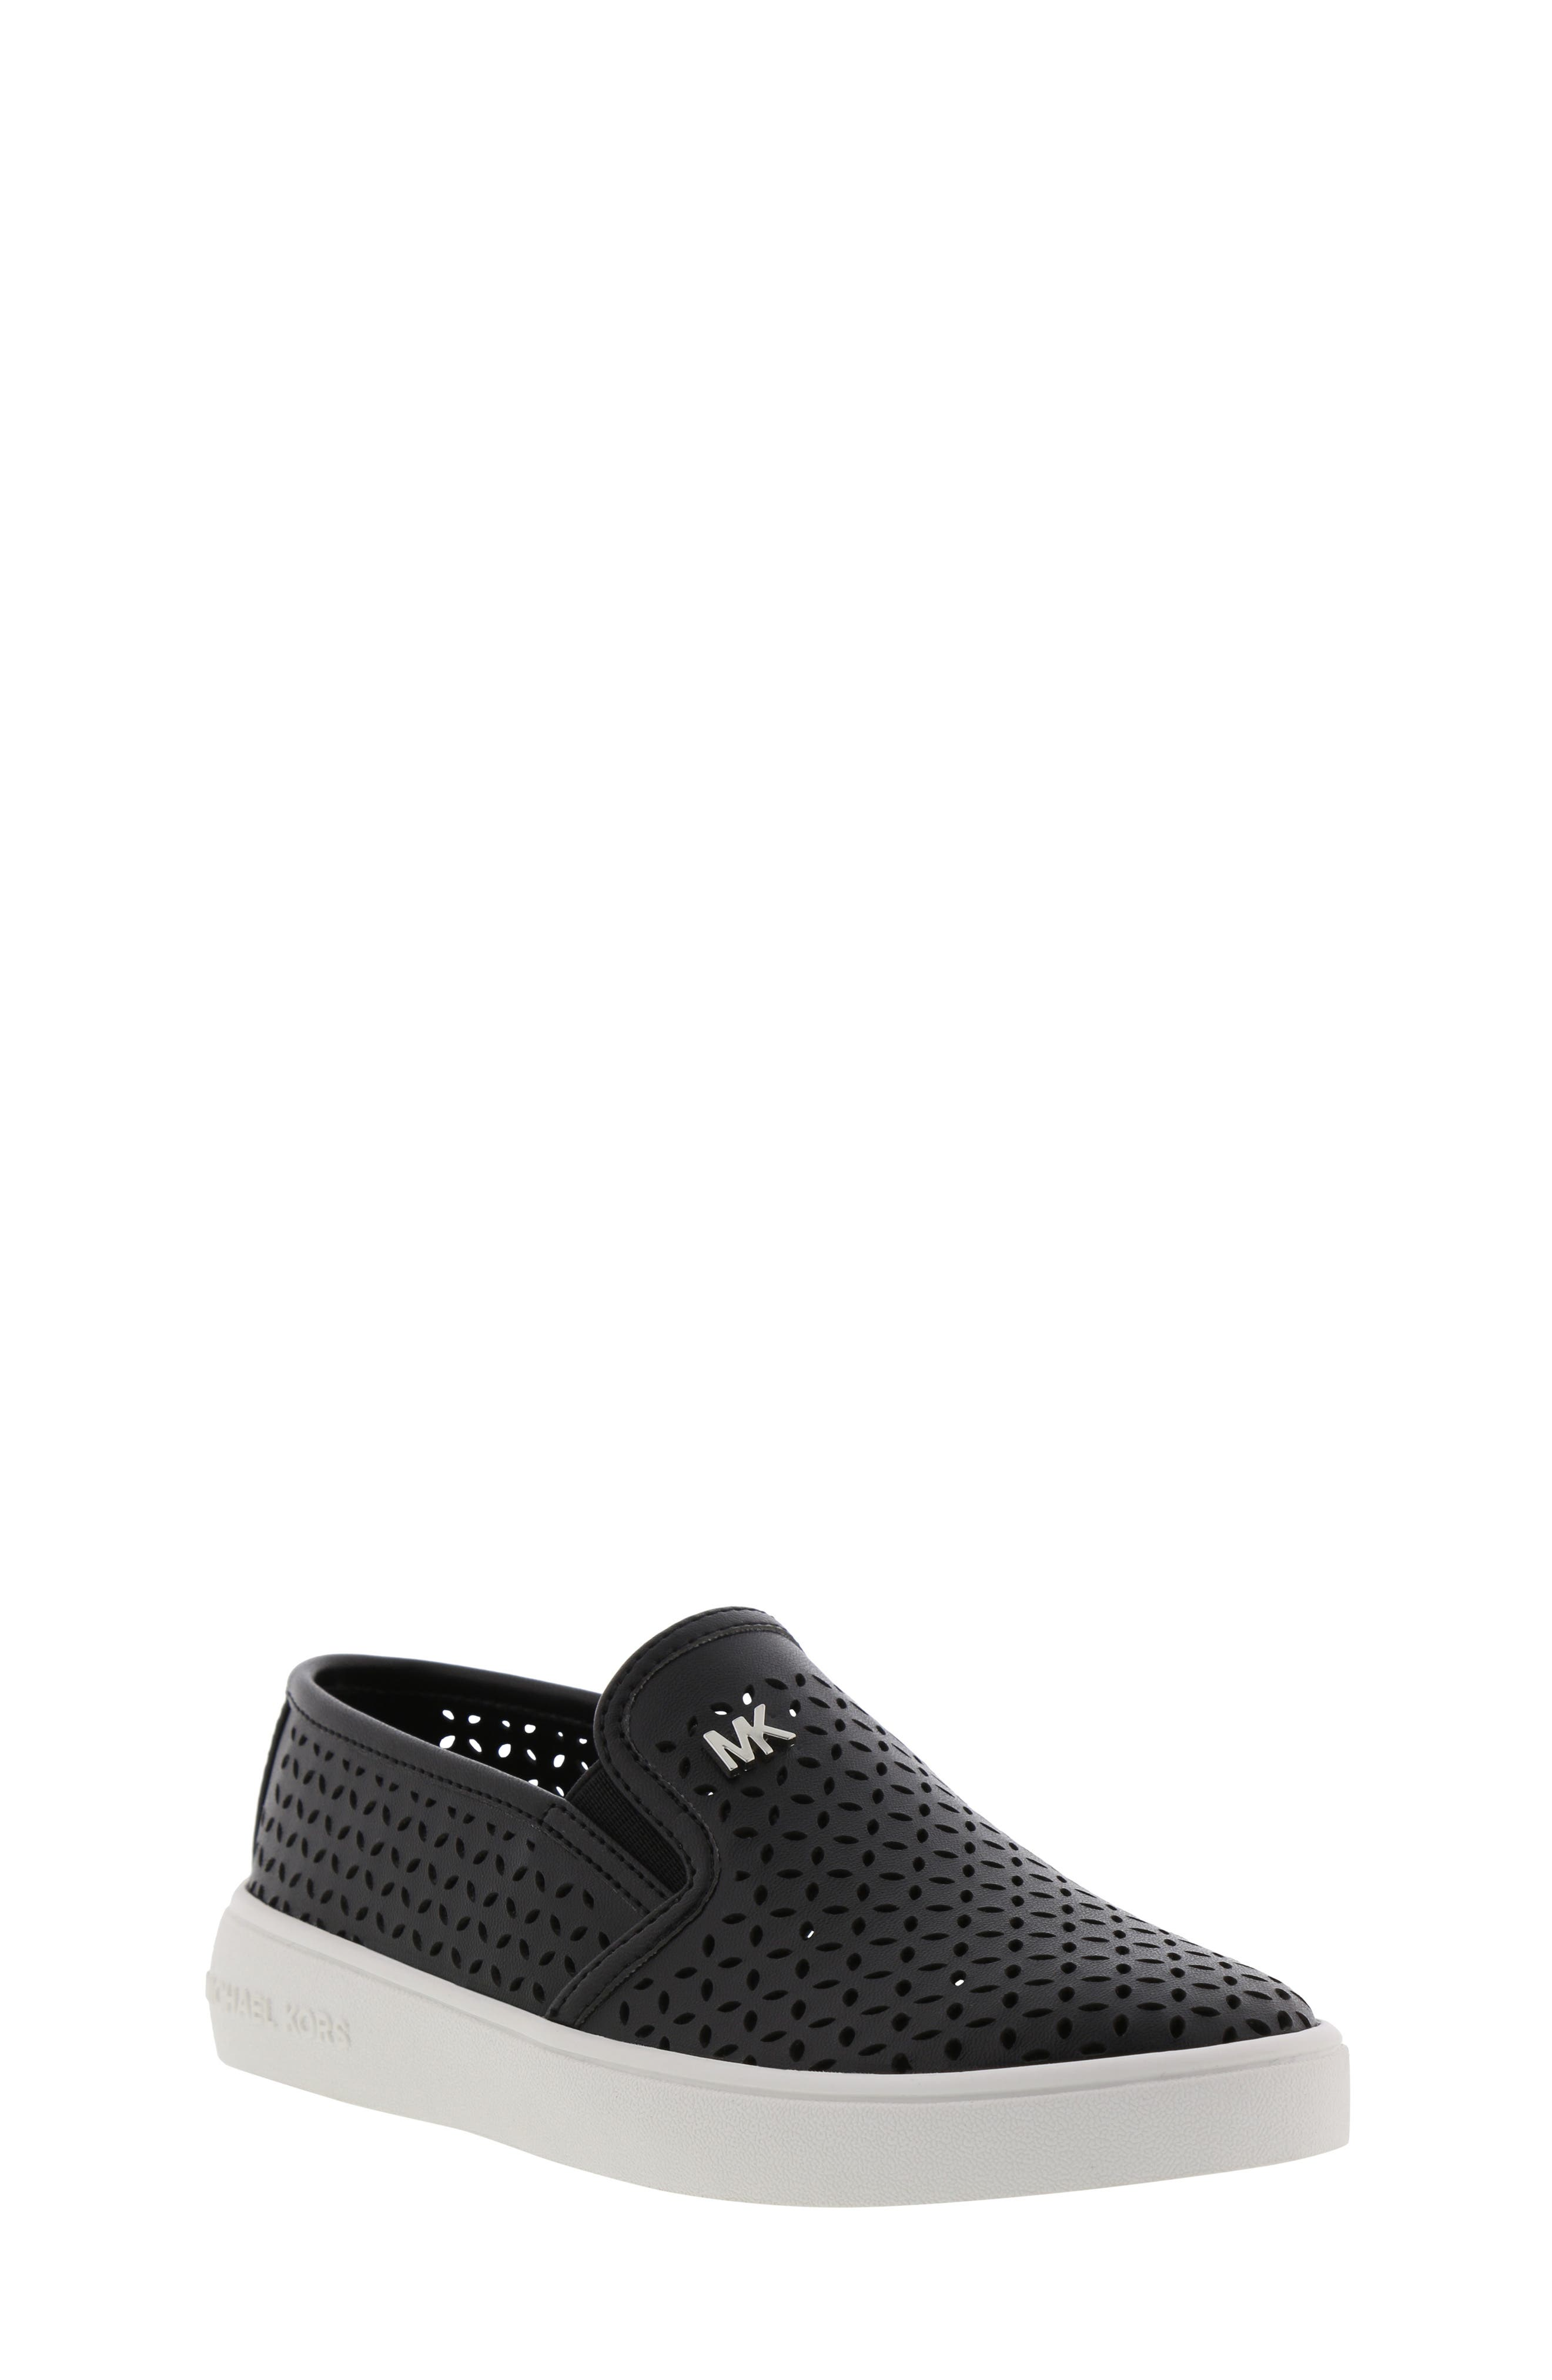 MICHAEL MICHAEL KORS, Jem Olivia Perforated Slip-On Sneaker, Main thumbnail 1, color, BLACK